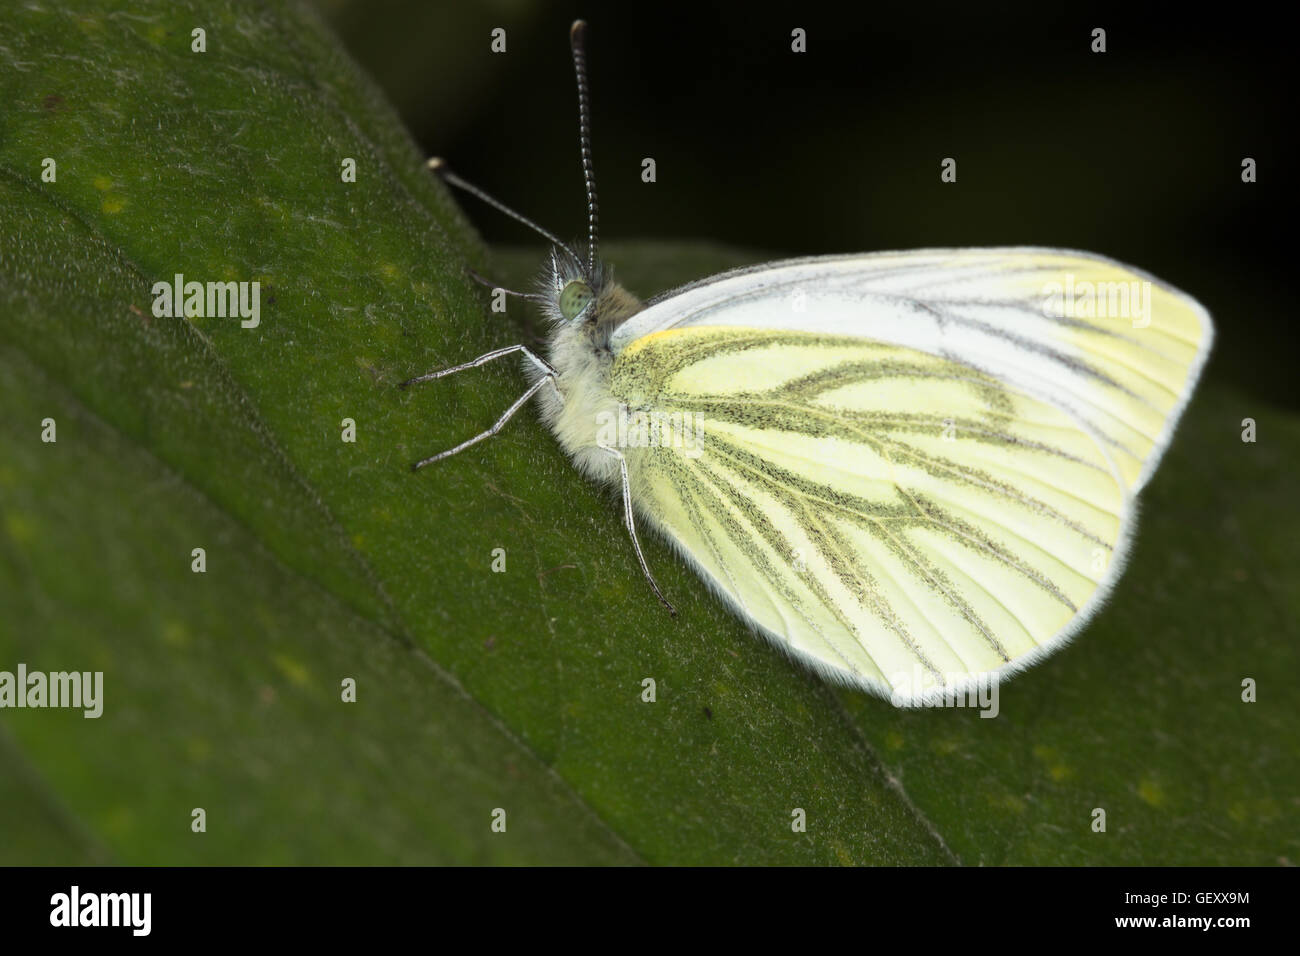 A profile image of a common English Butterfly, Green-veined White, (Pieris napi), taken around Durham, England. - Stock Image